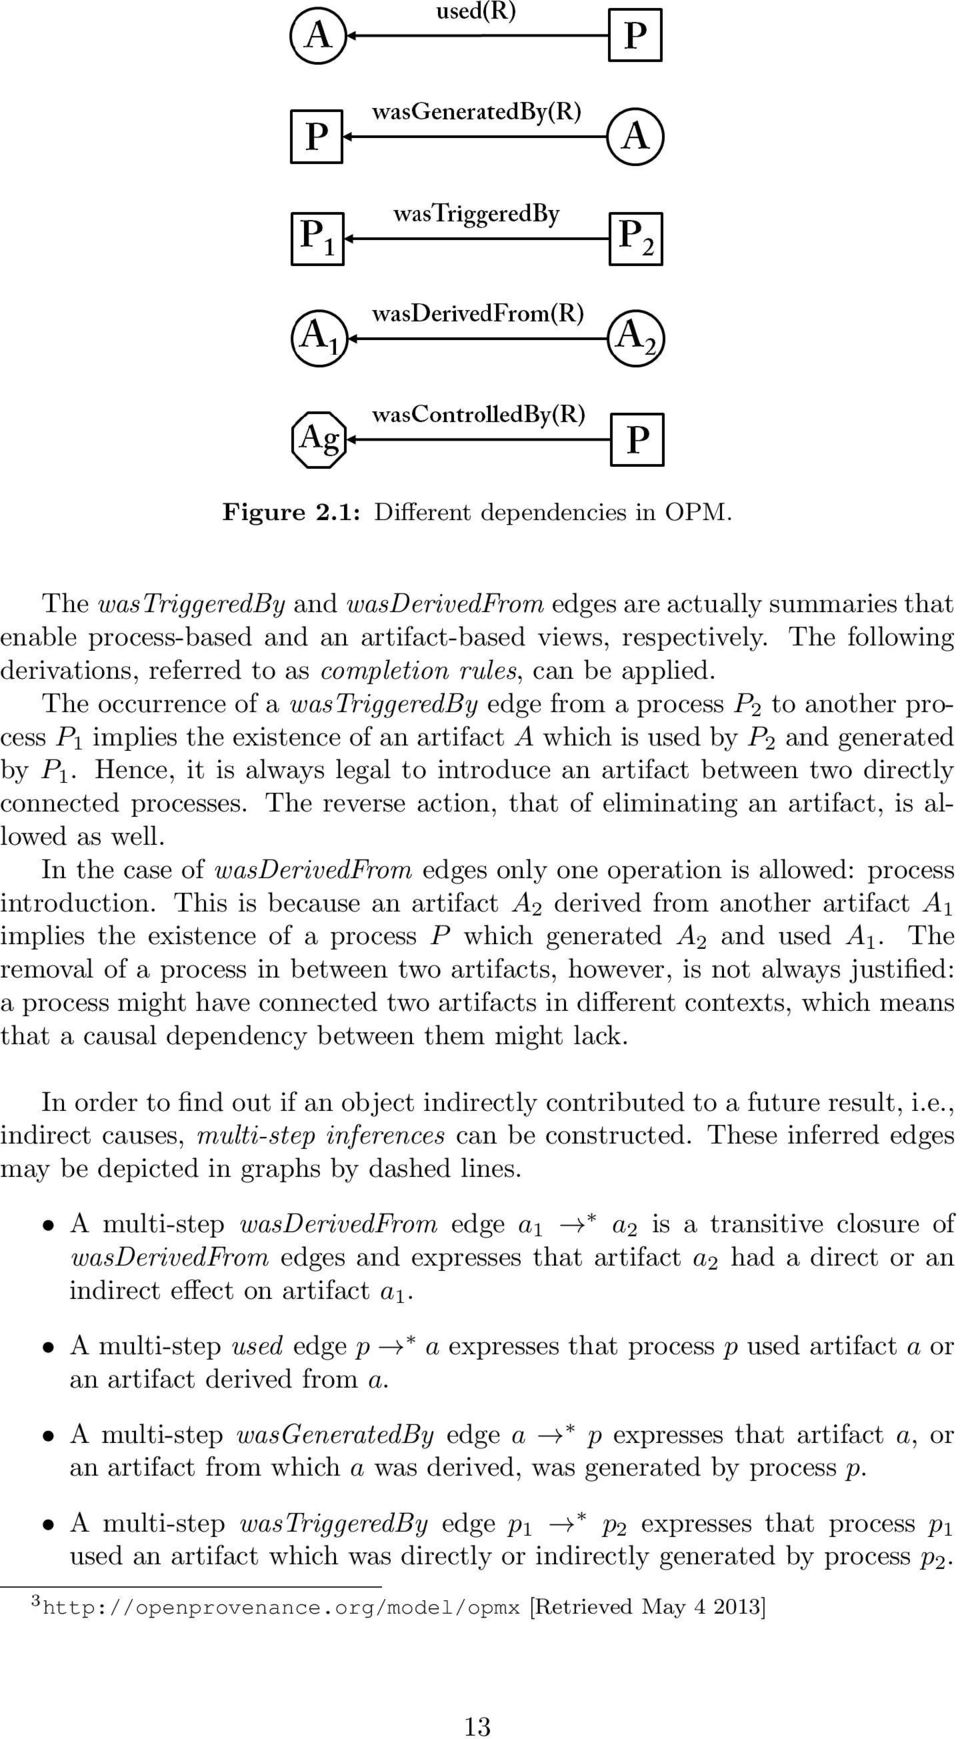 The occurrence of a wastriggeredby edge from a process P 2 to another process P 1 implies the existence of an artifact A which is used by P 2 and generated by P 1.